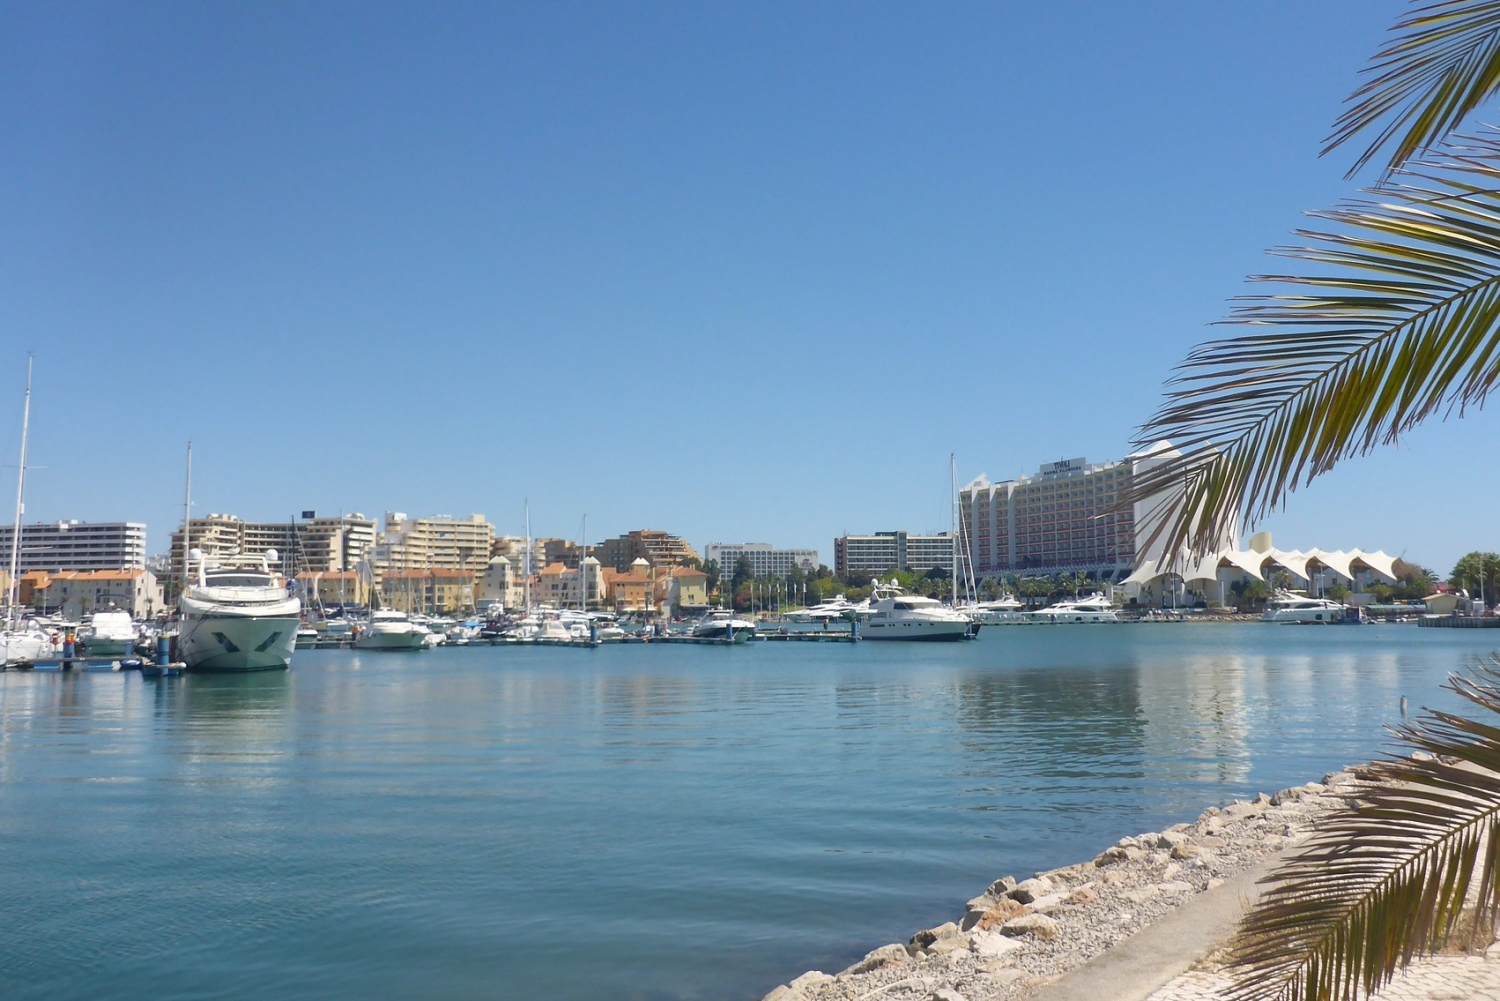 Guide to Vilamoura, Algarve